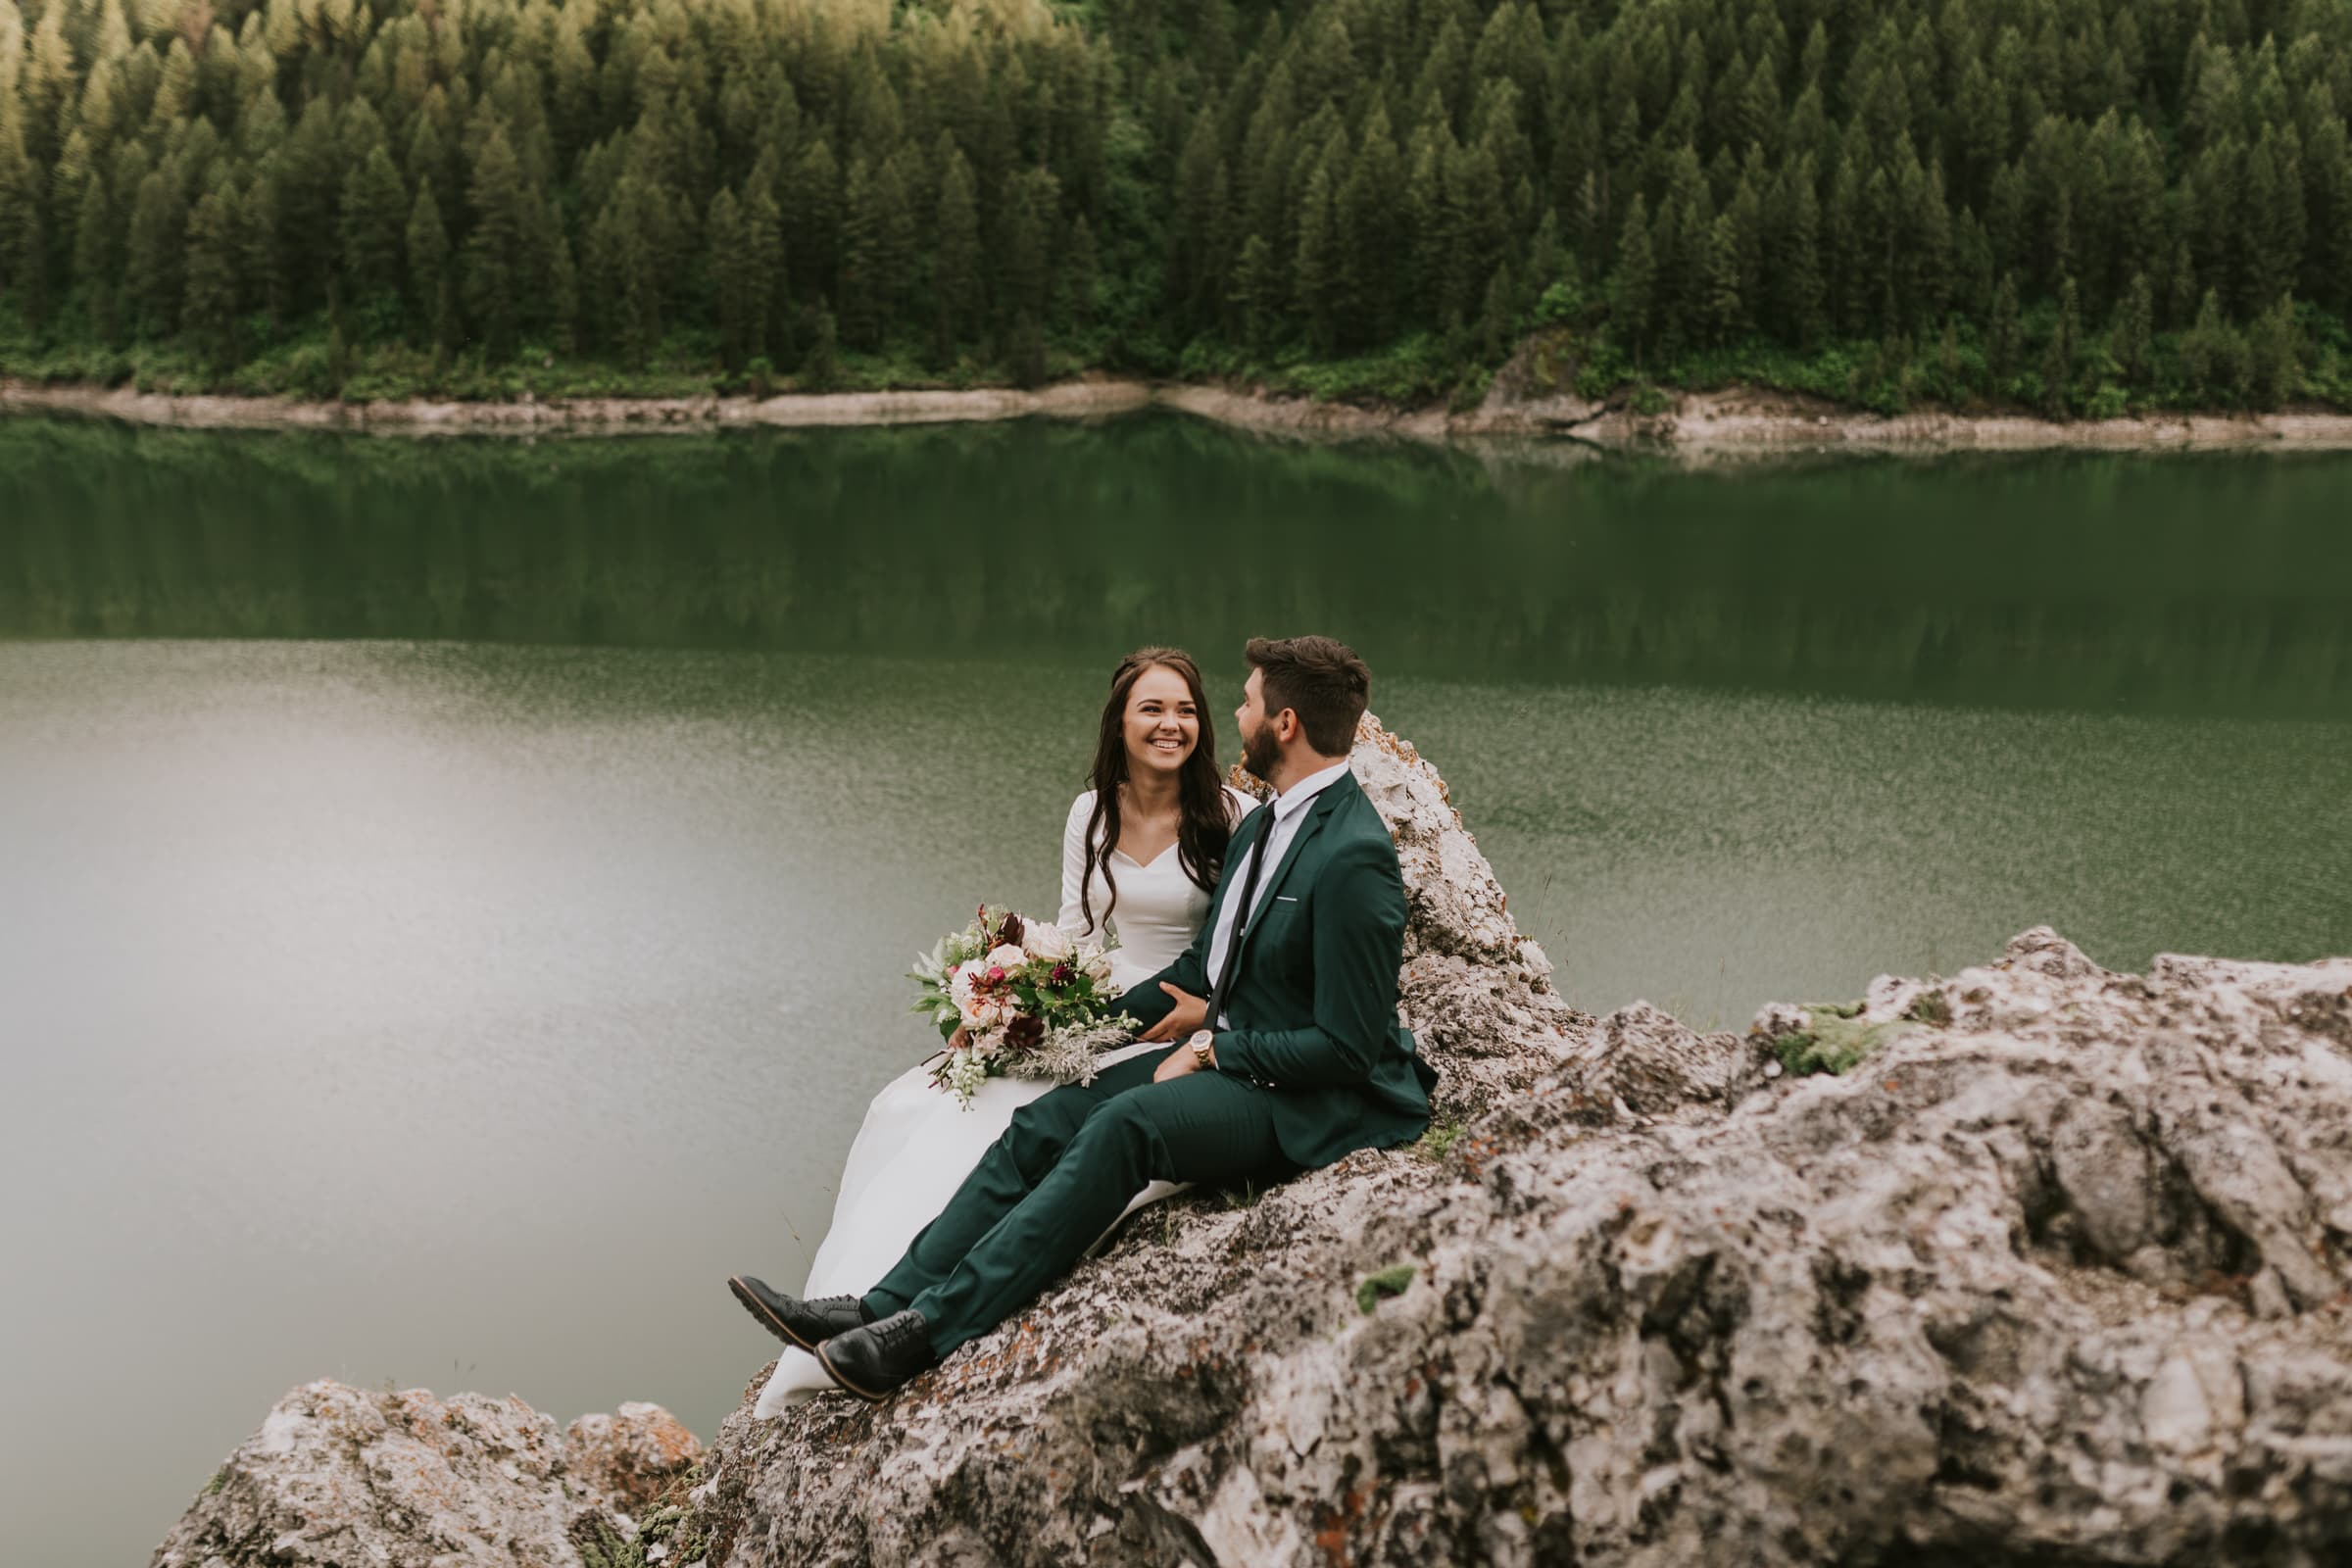 A bride and groom sitting on a rock in the forest on their wedding day.